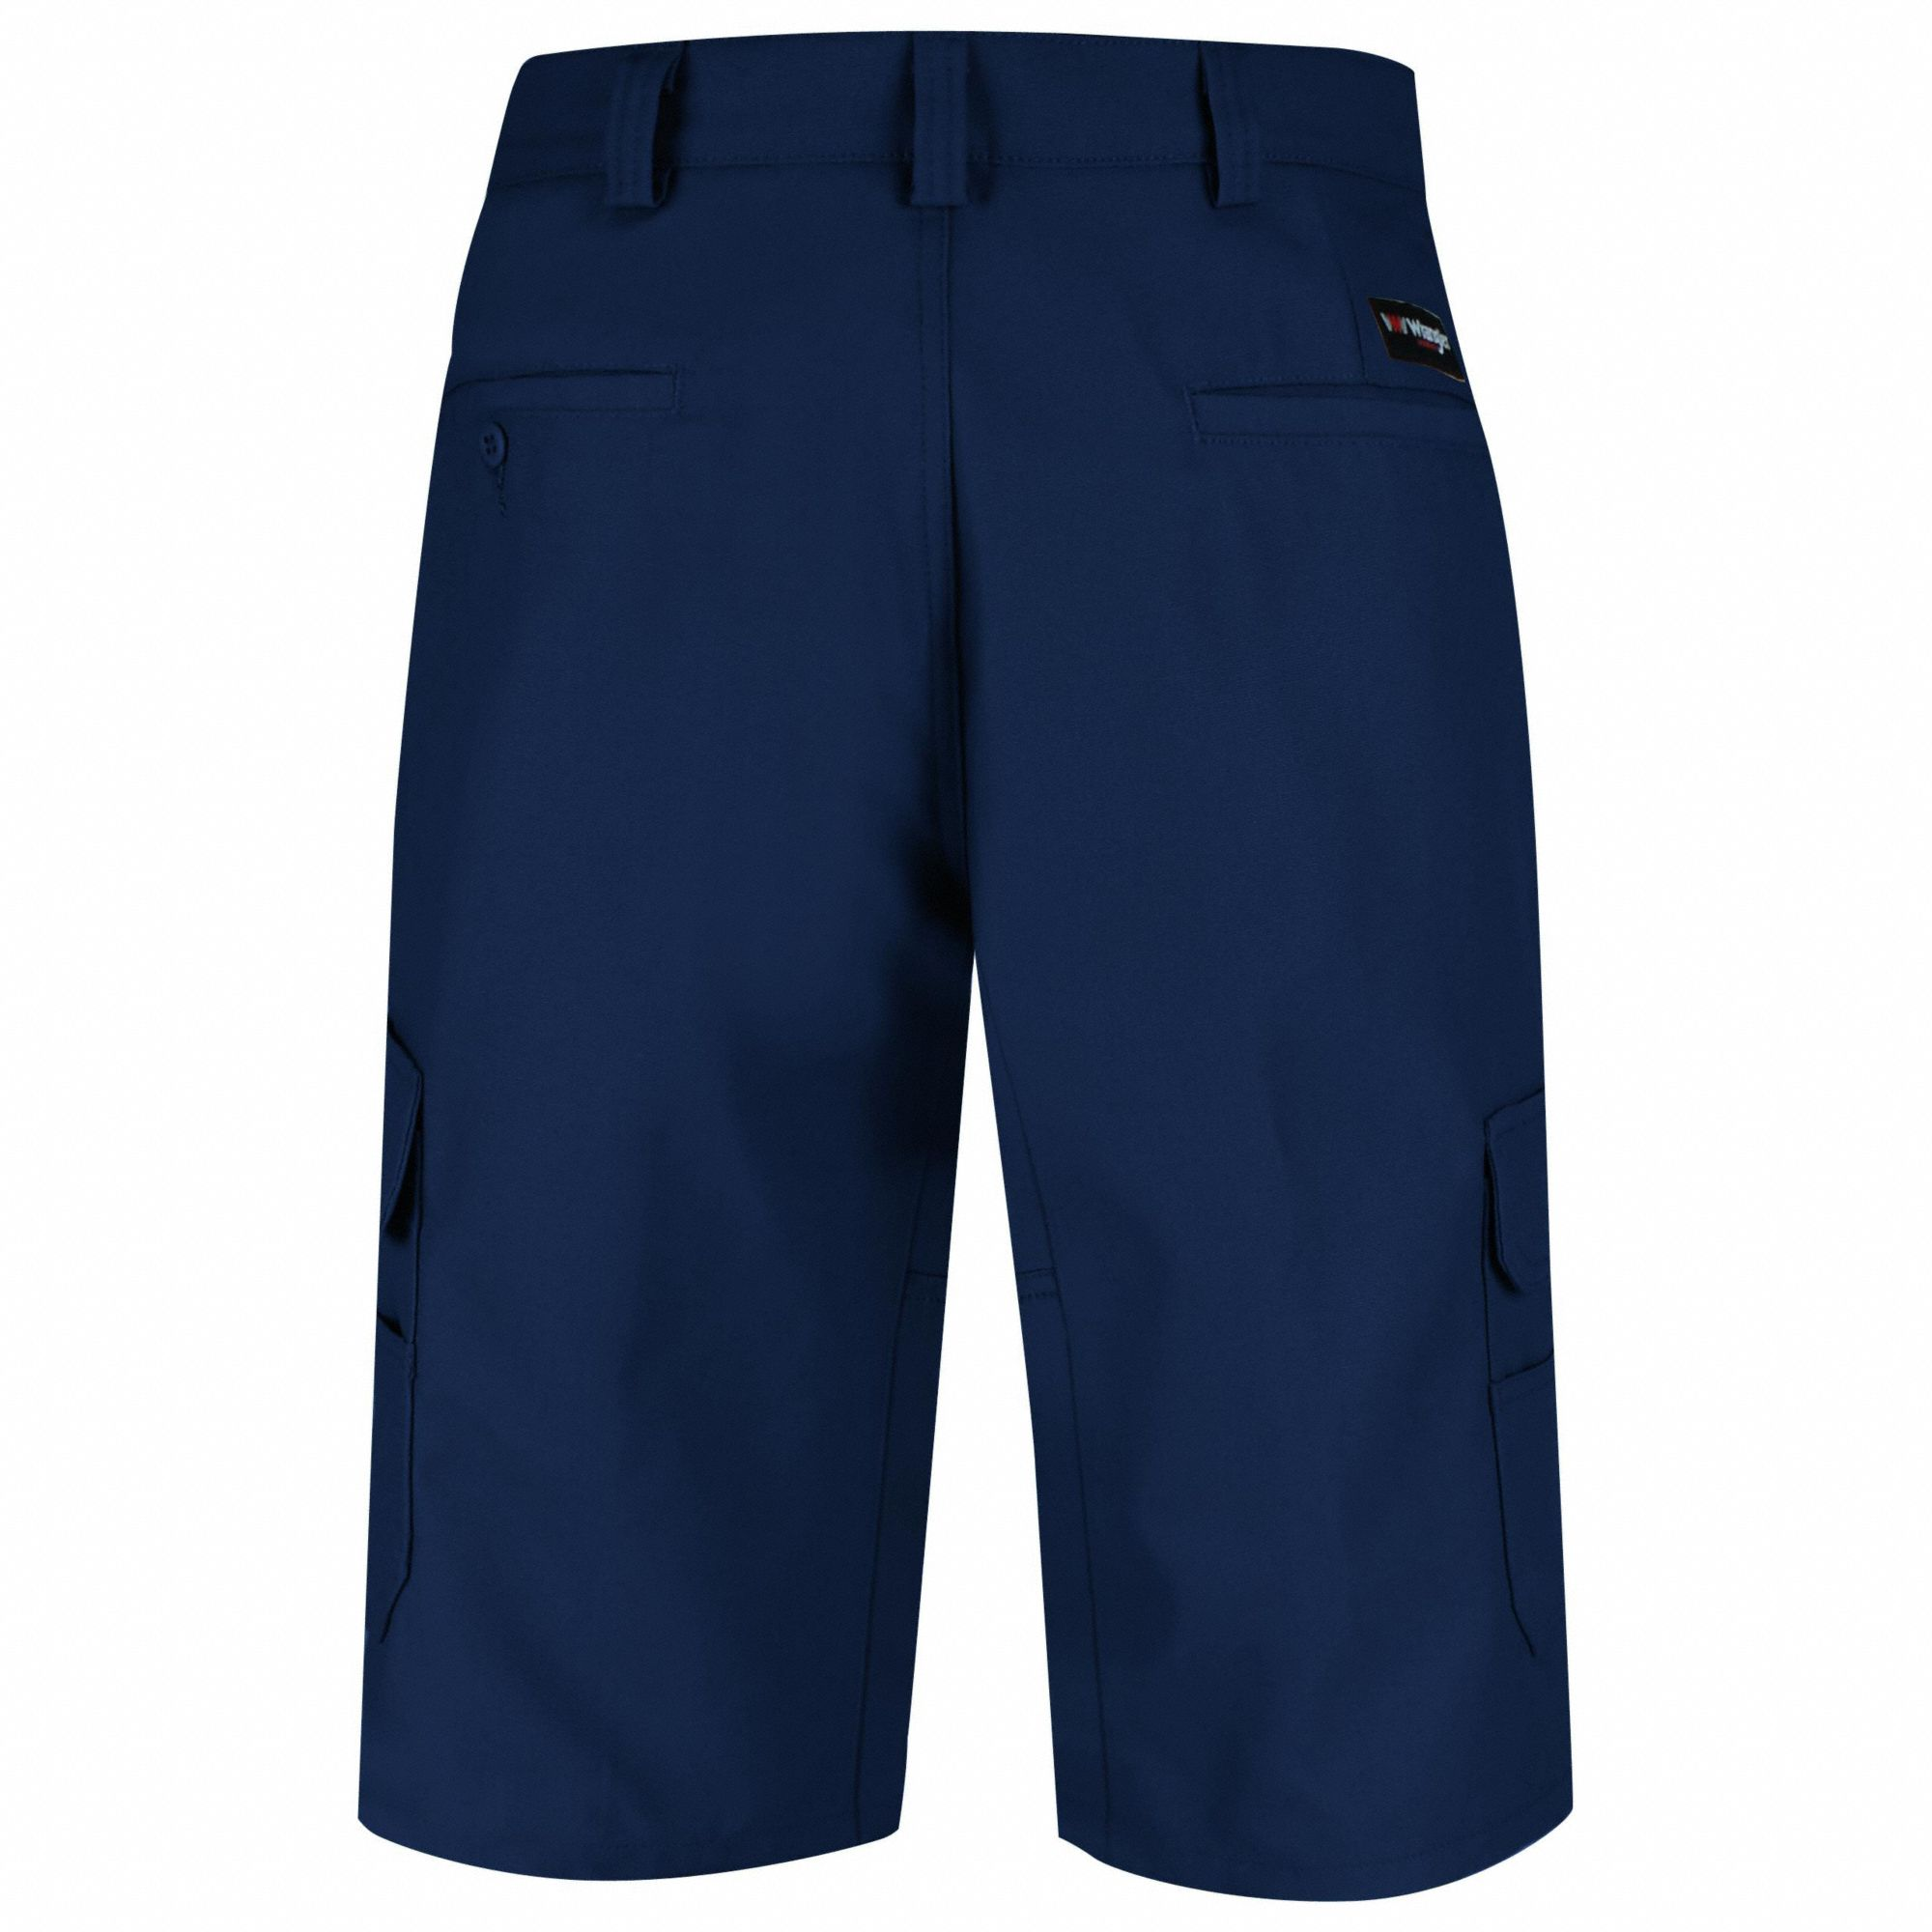 Cargo Shorts,Navy,Cotton/Polyester